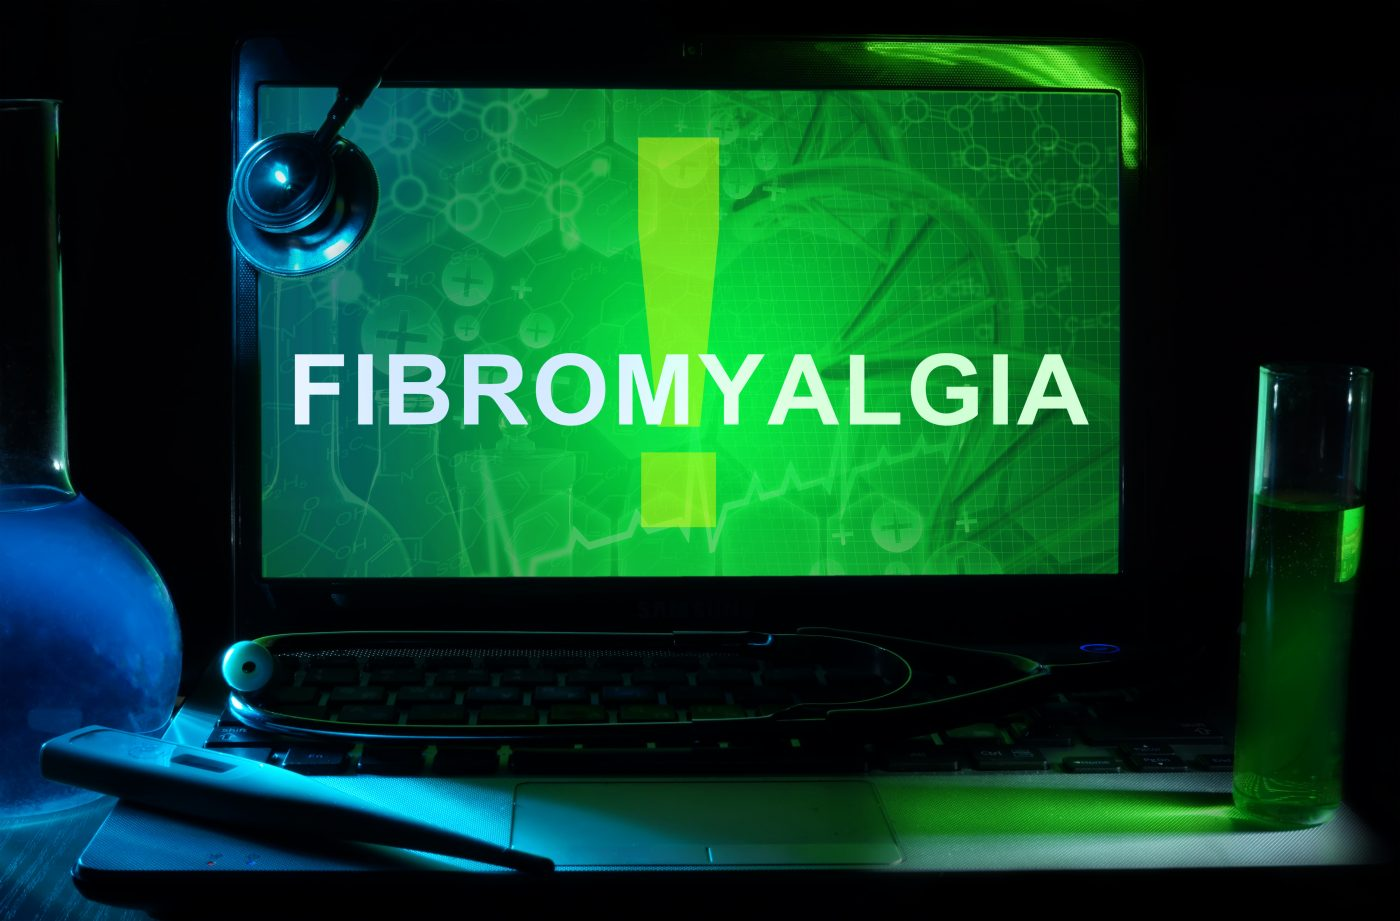 Researchers Identify Variables Associated With Fibromyalgia Diagnosis Using Electronic Medical Record Data